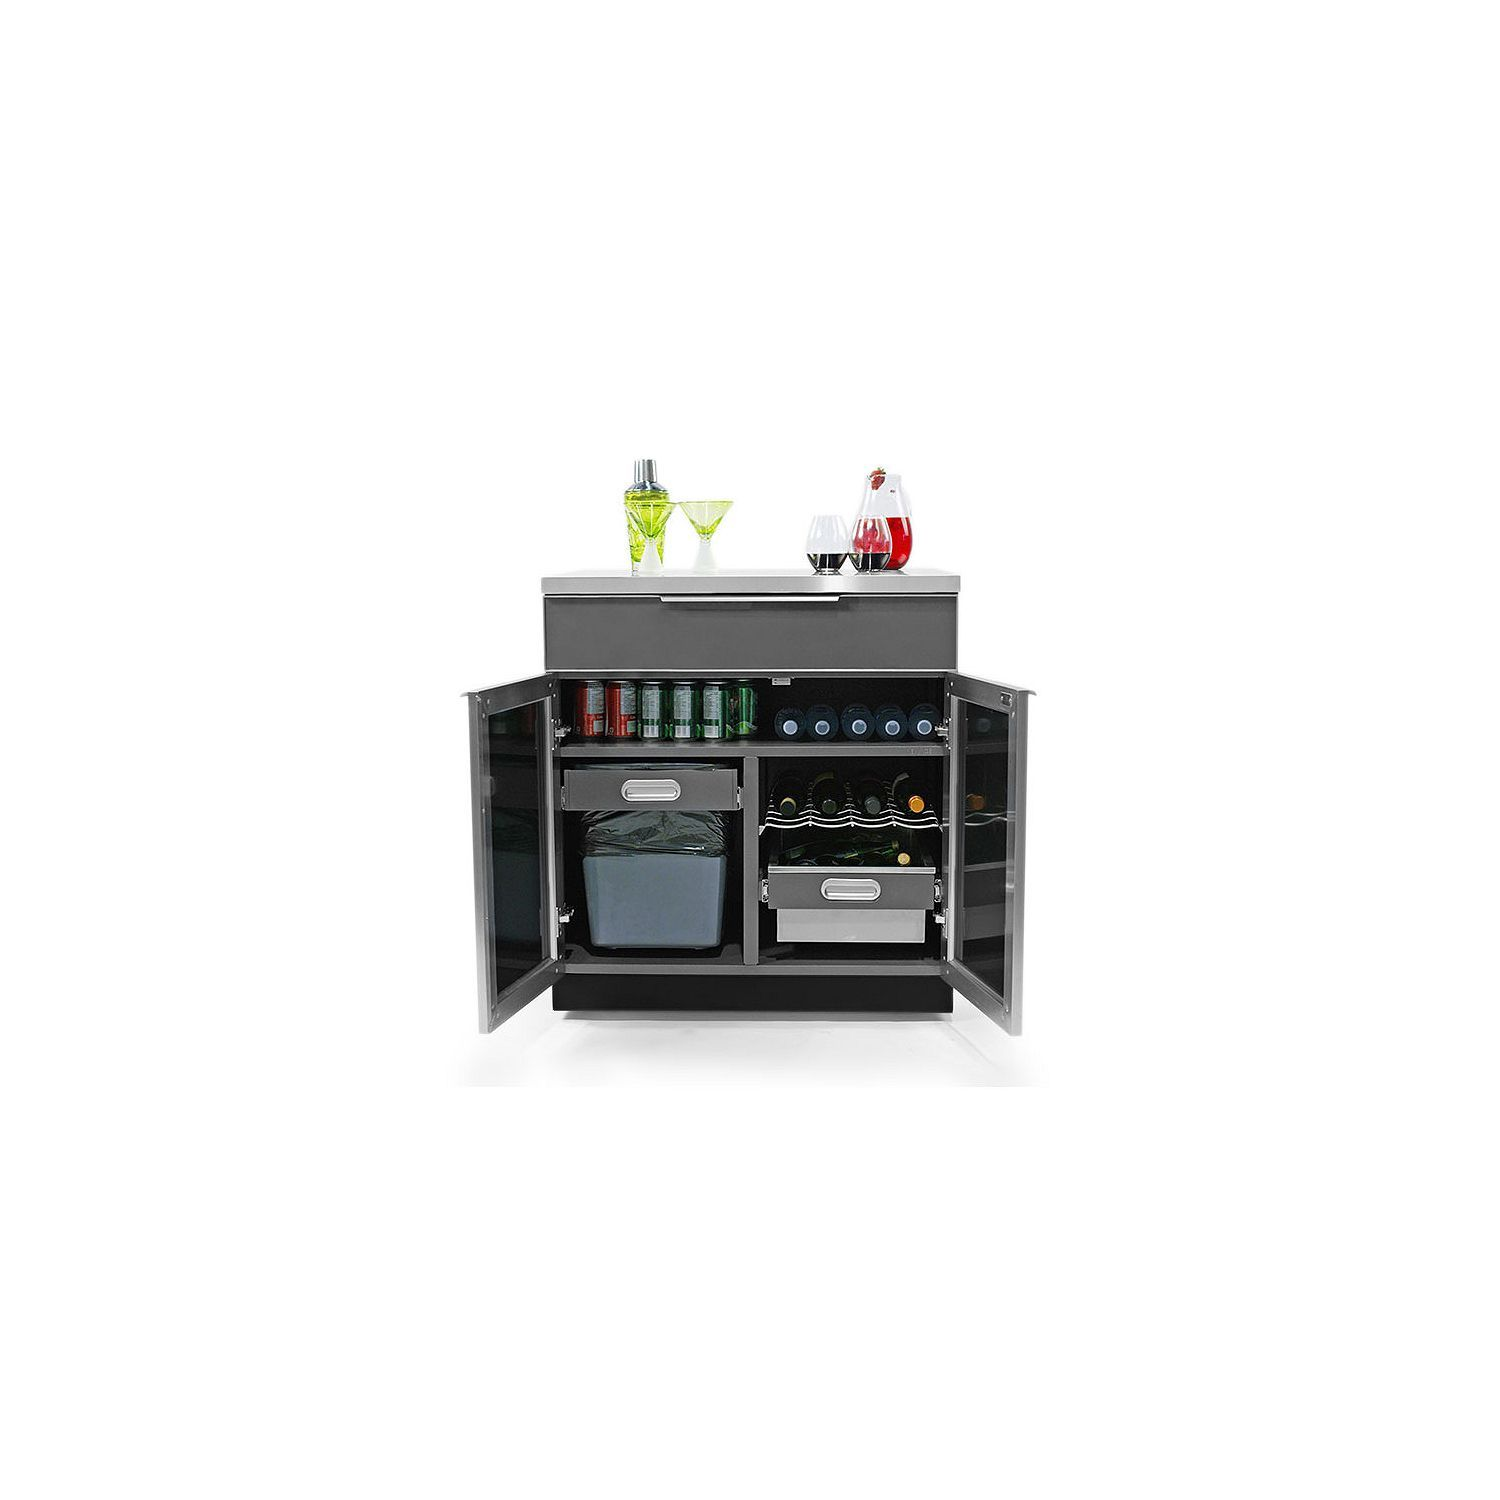 Newage Products Outdoor Kitchen 32 Aluminum Bar Cabinet Sam S Club Outdoor Kitchen Bar Cabinet Newage Products